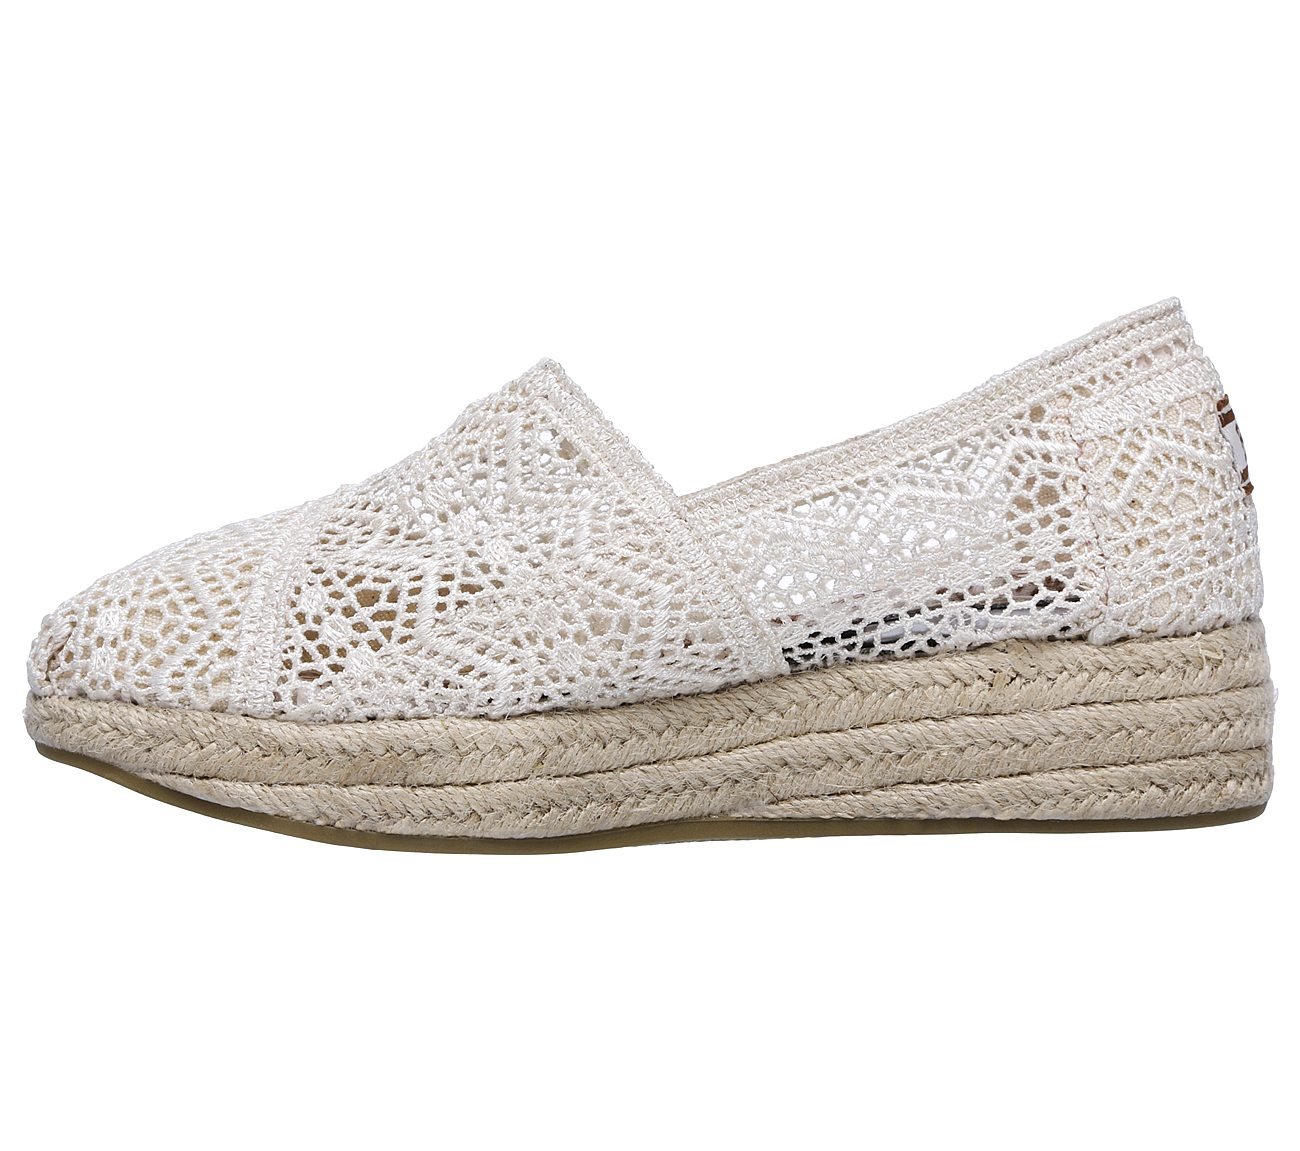 76762d12669 Buy SKECHERS Bobs Highlights - Amaze BOBS Shoes only  50.00